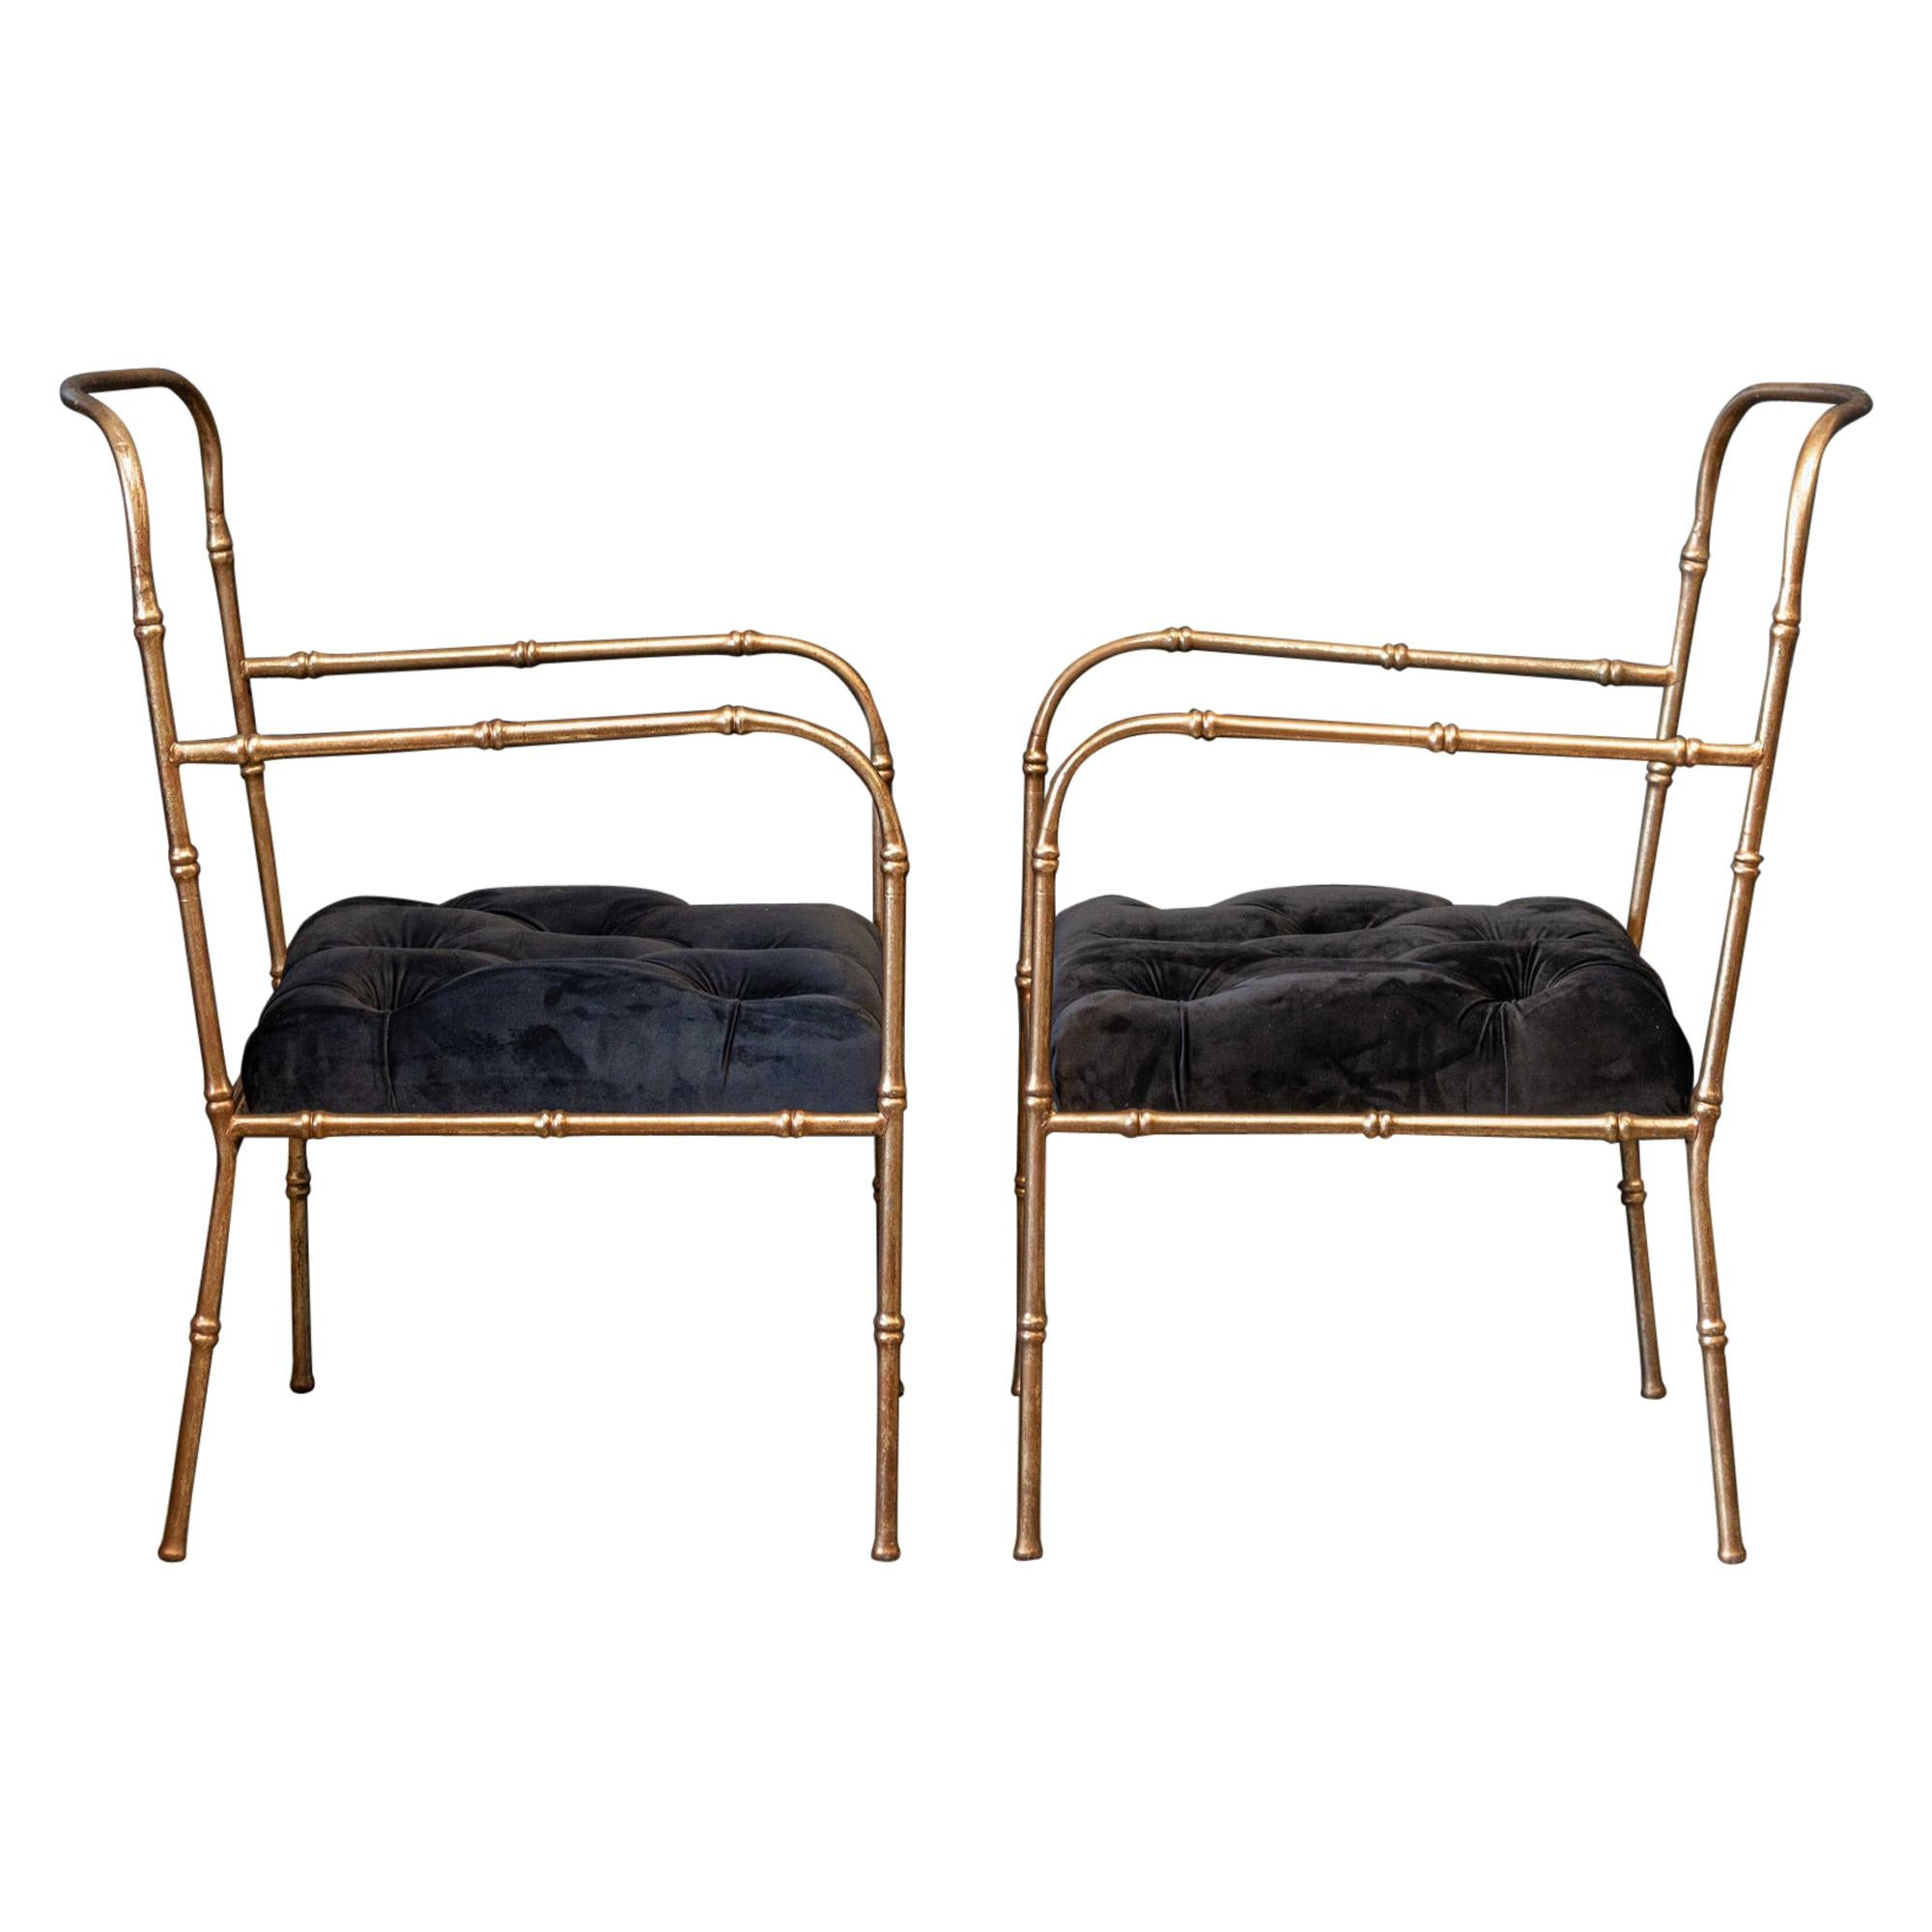 Pair of Jacques Adnet Style Faux Bamboo Gilt Iron Armchairs